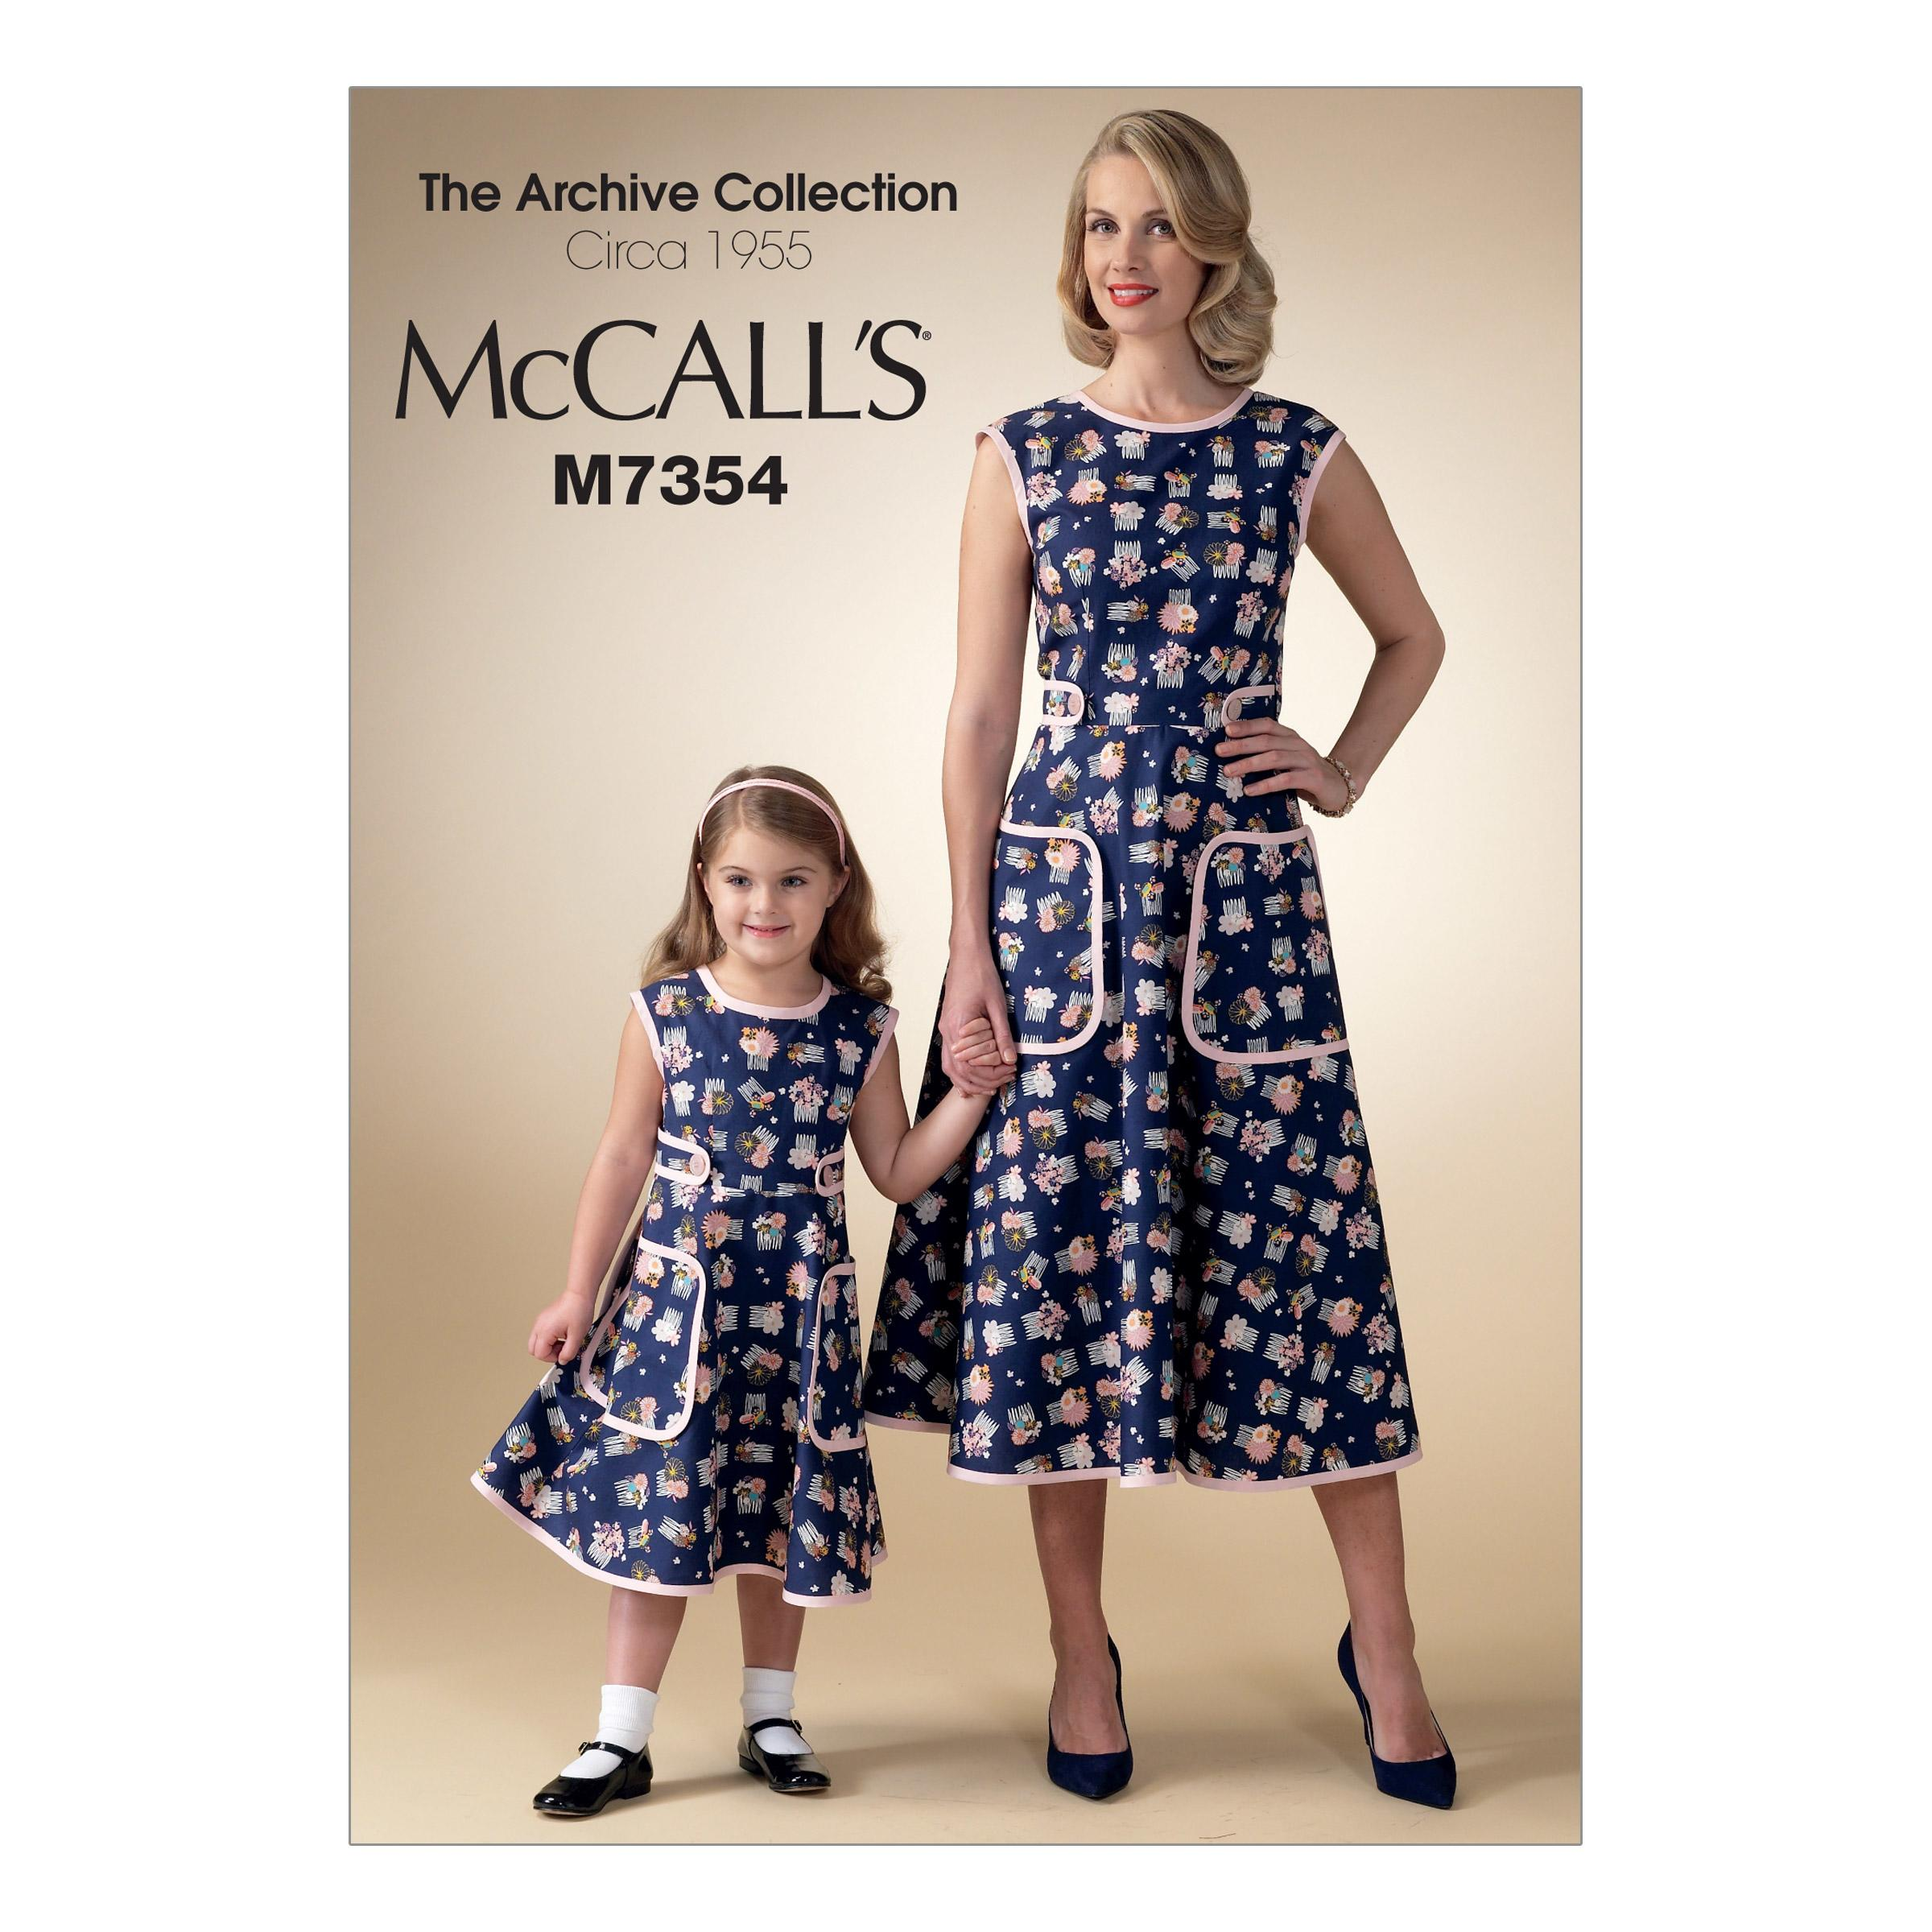 McCalls M7354 Children, Dresses, Girls/Boys, The Archive Collection